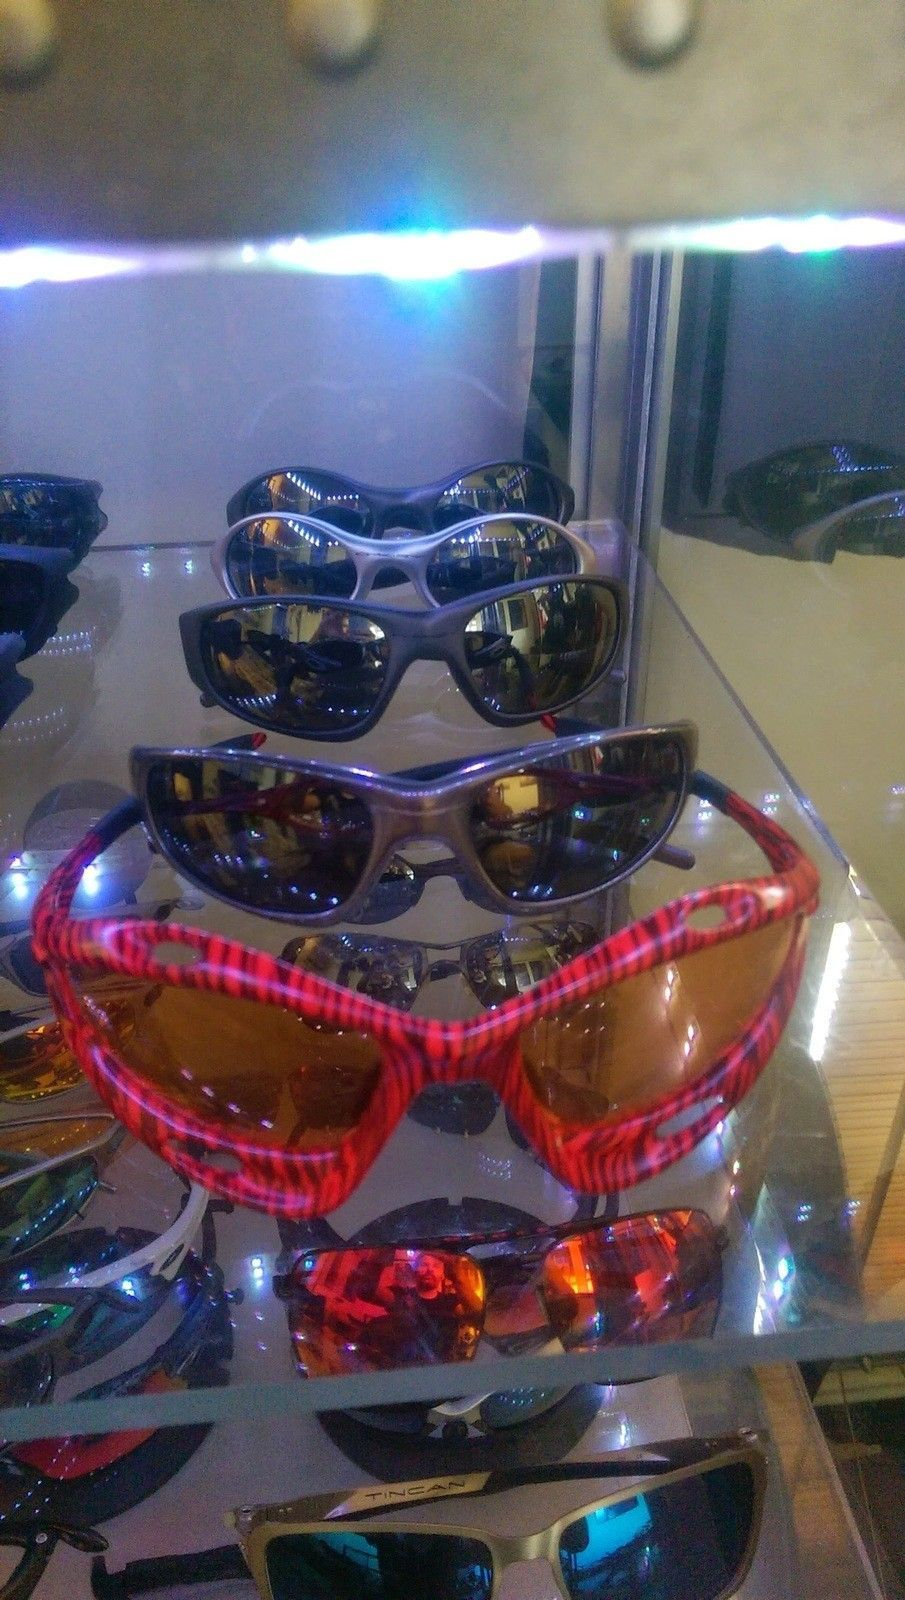 Red Tiger's The Collection - IMAG1816.jpg